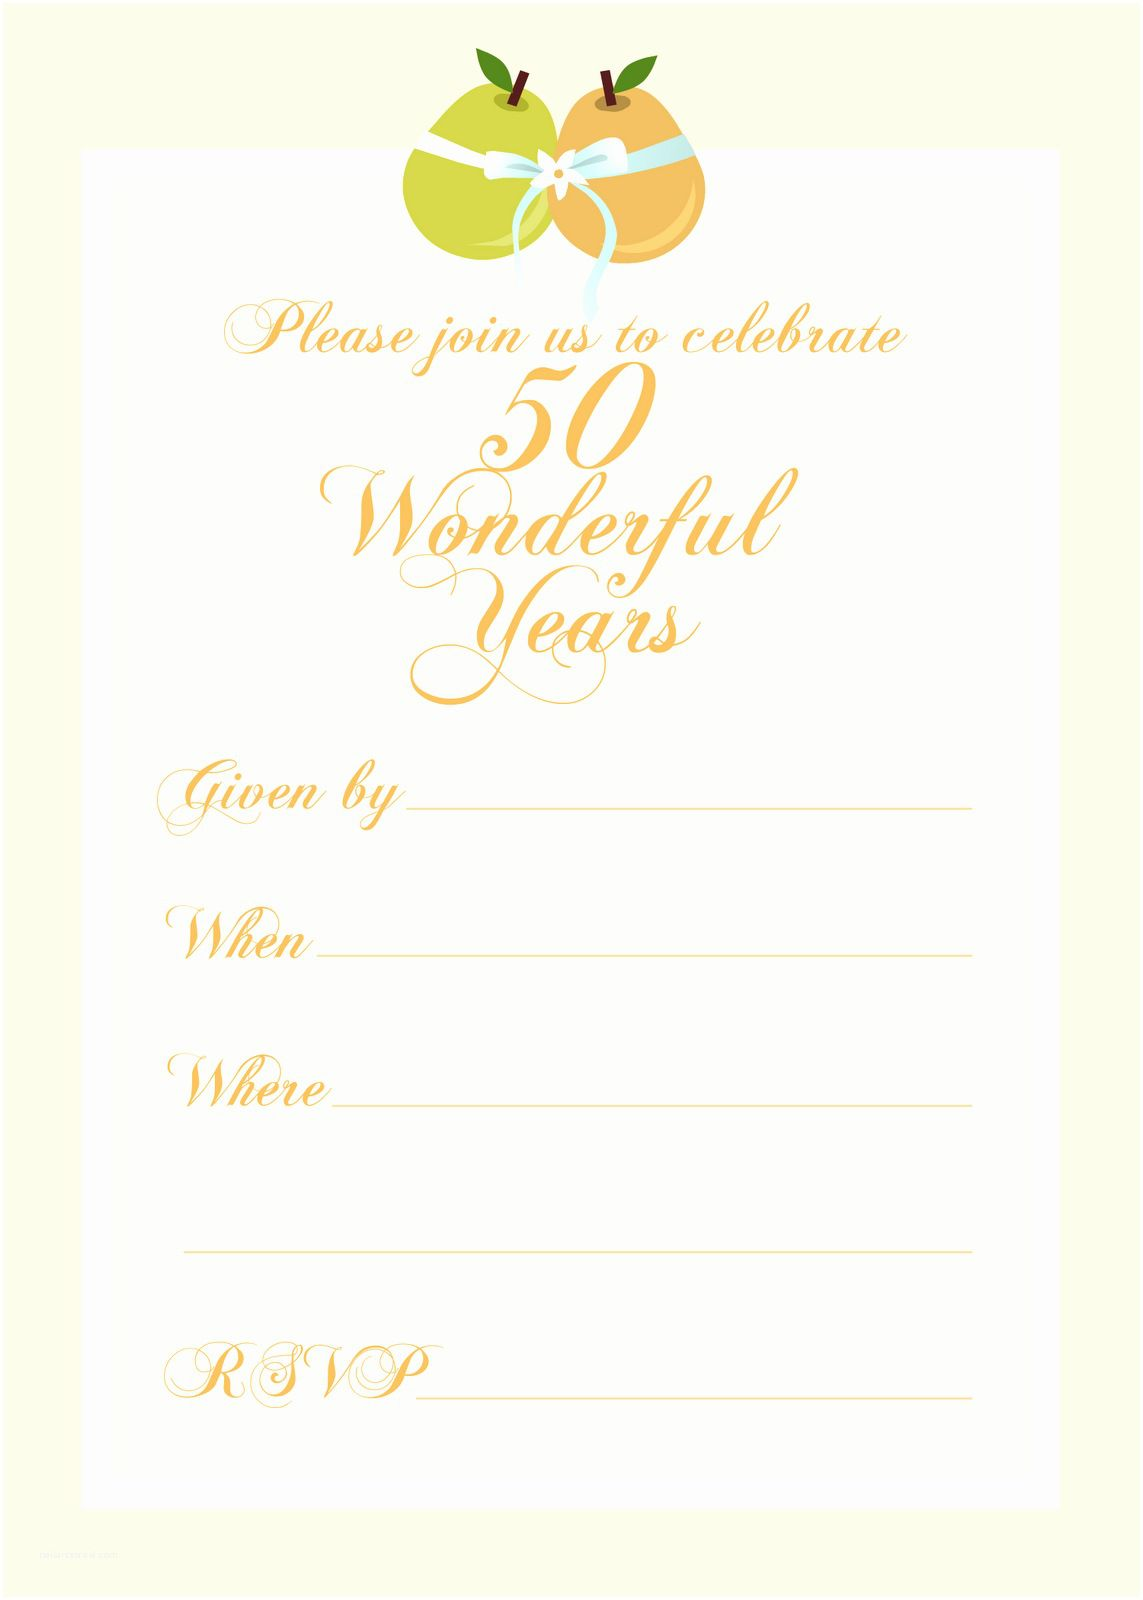 003 Astounding 50th Wedding Anniversary Invitation Template Inspiration  Templates Golden Uk Free DownloadFull